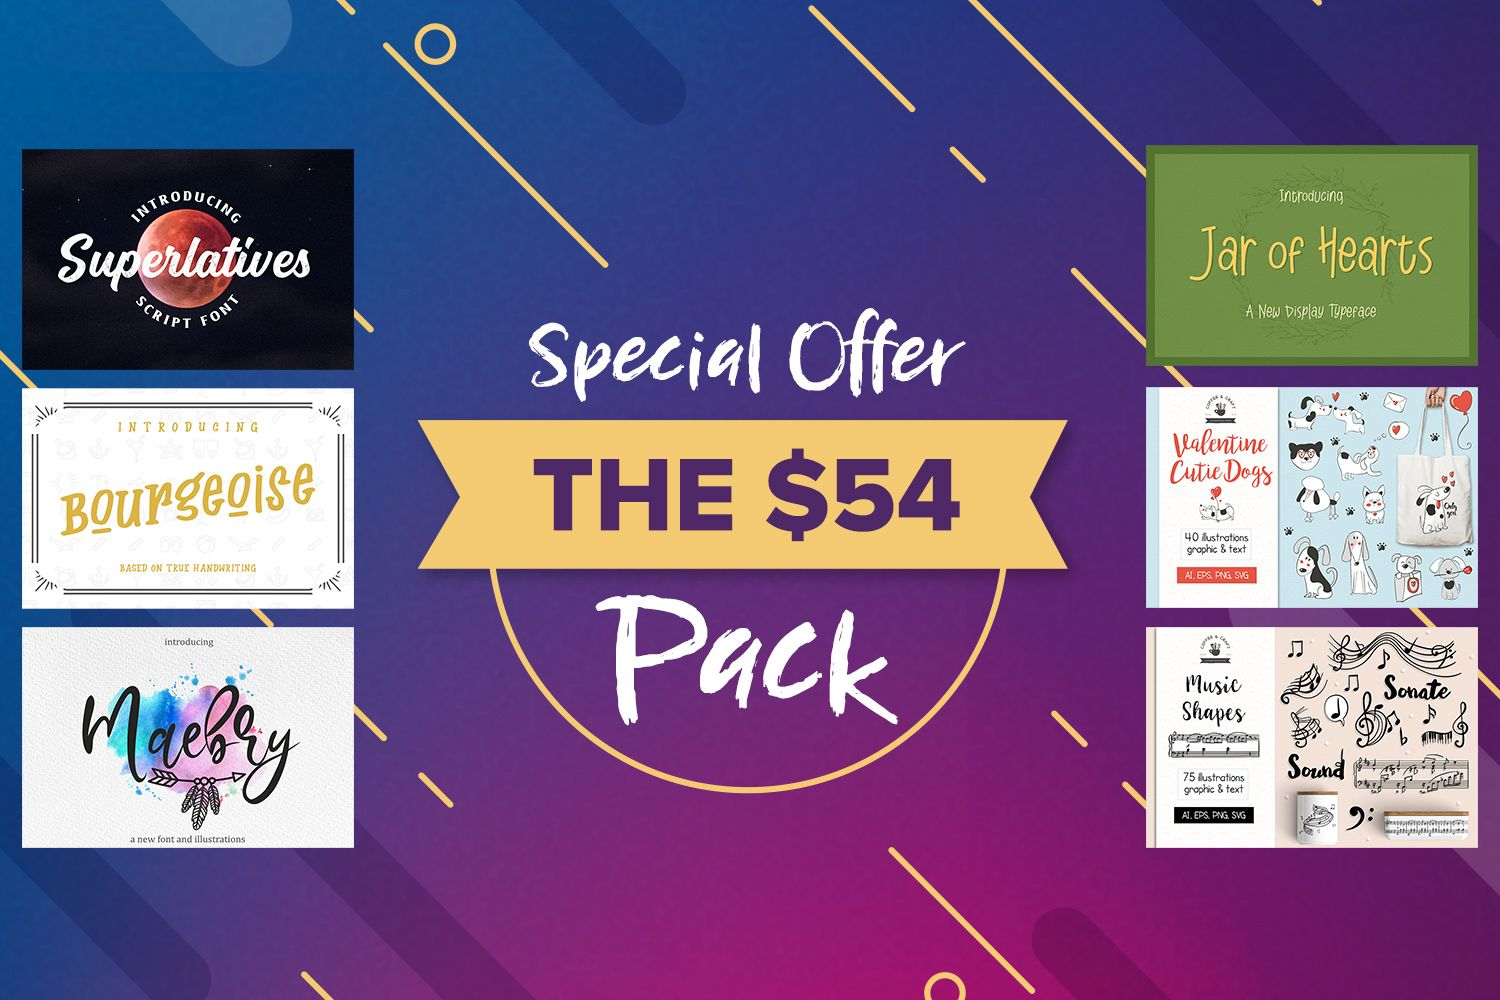 Download The 54 Pack By Font Bundles Store Available For 54 00 At Designbundles Net Font Bundles Design Bundles Store Design